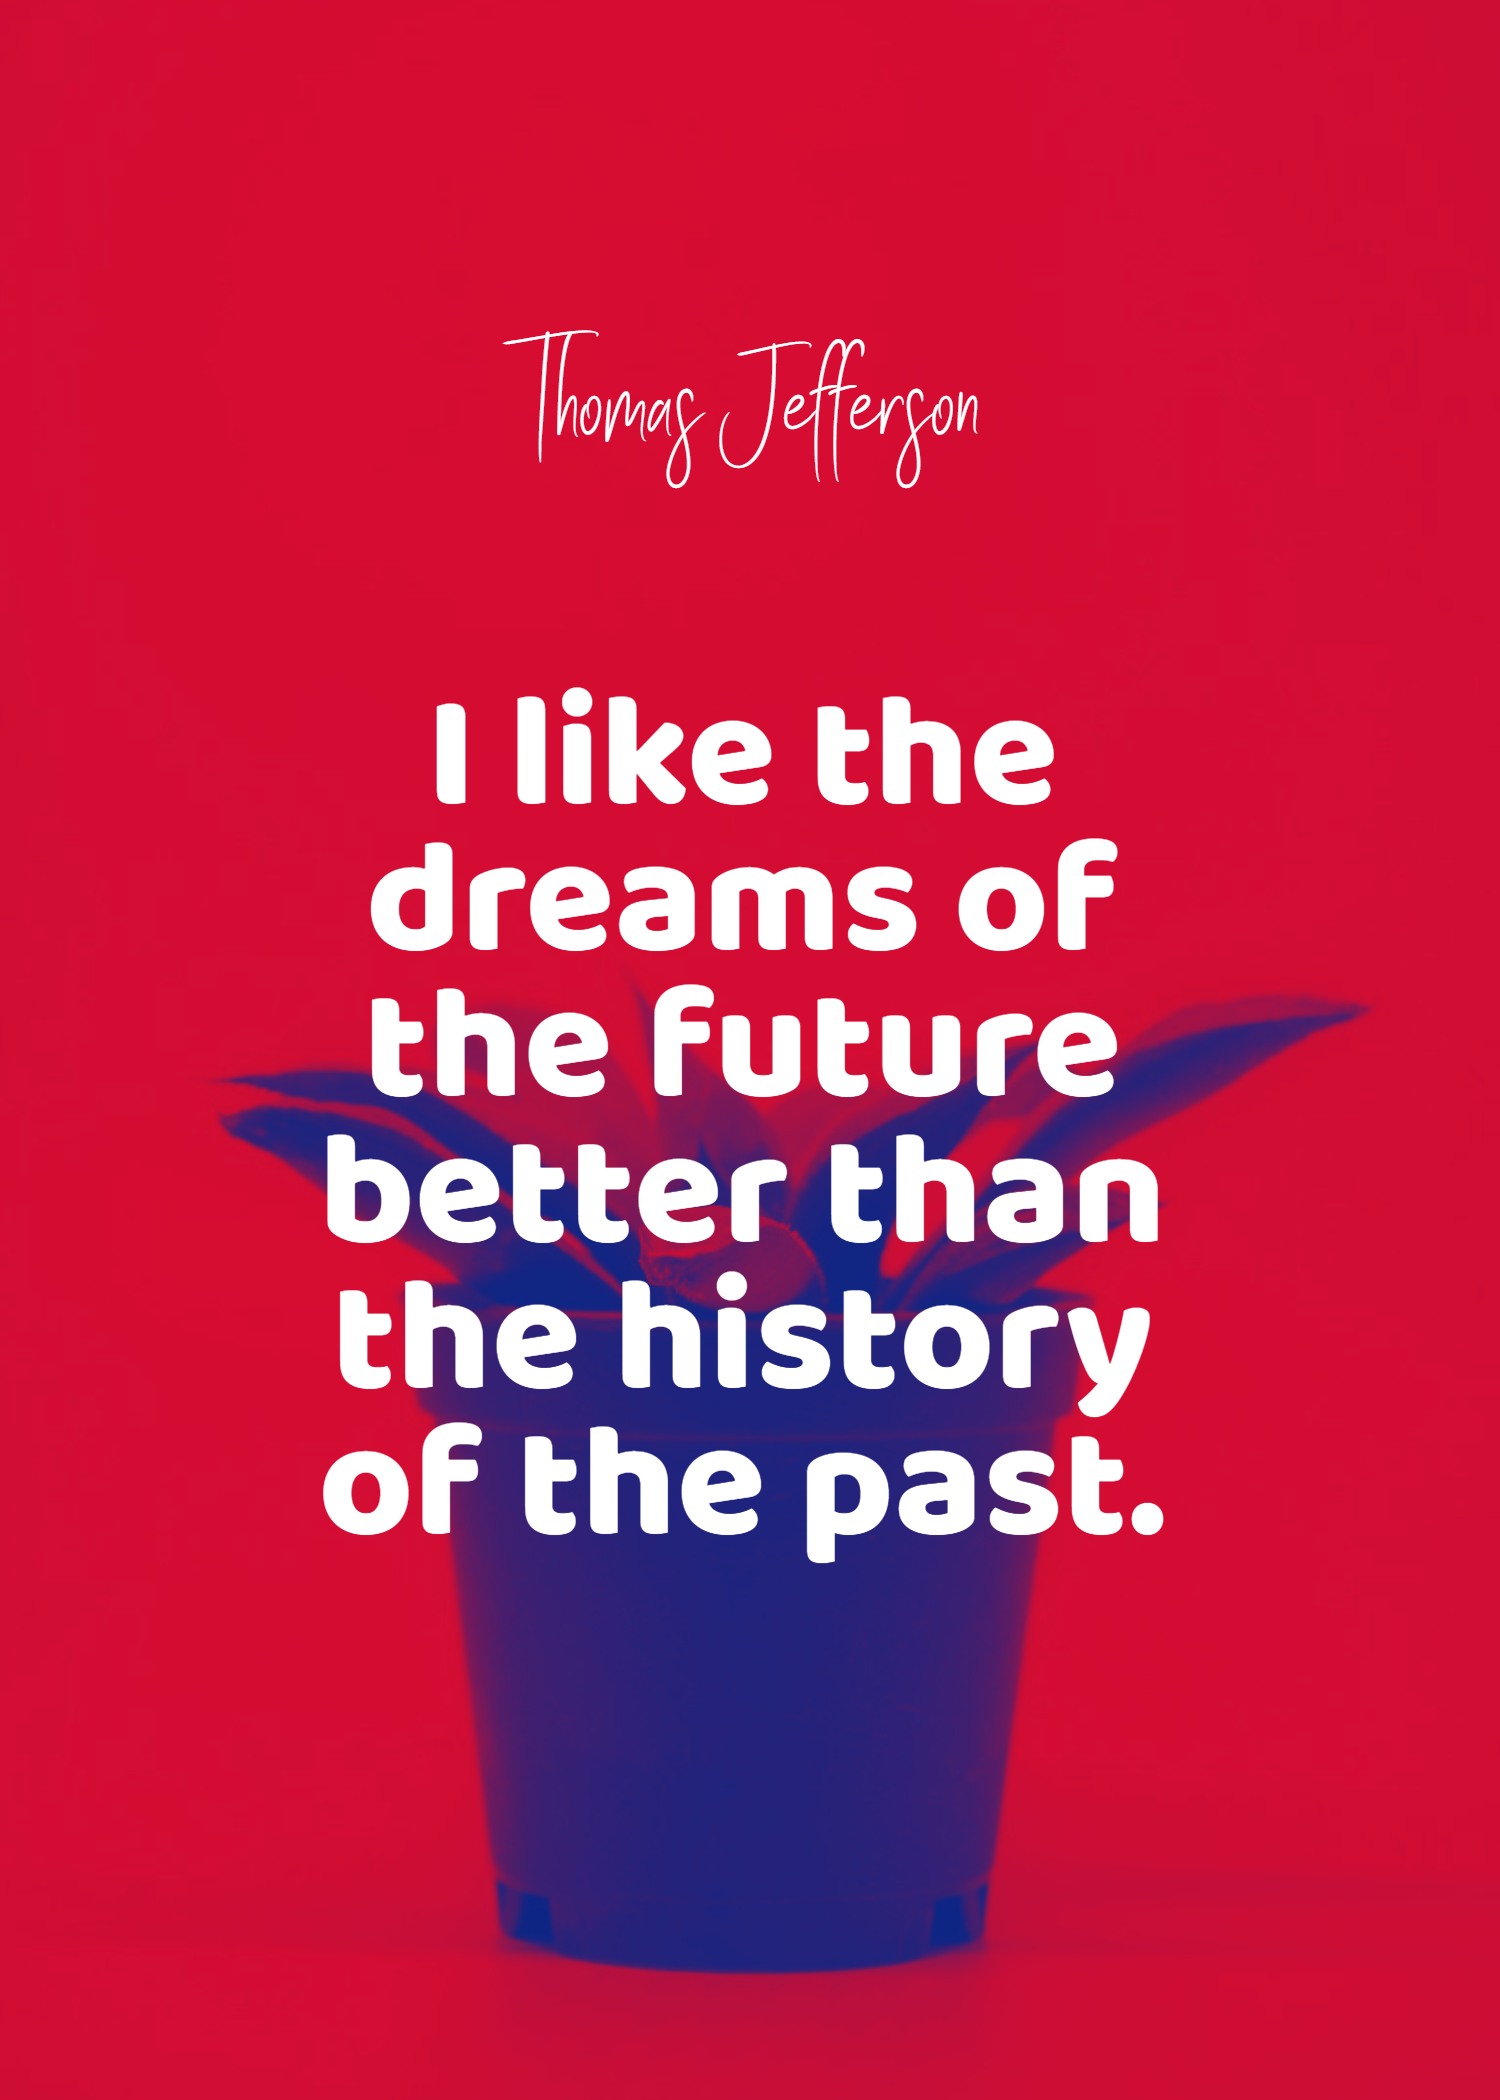 Quotes image of I like the dreams of the future better than the history of the past.